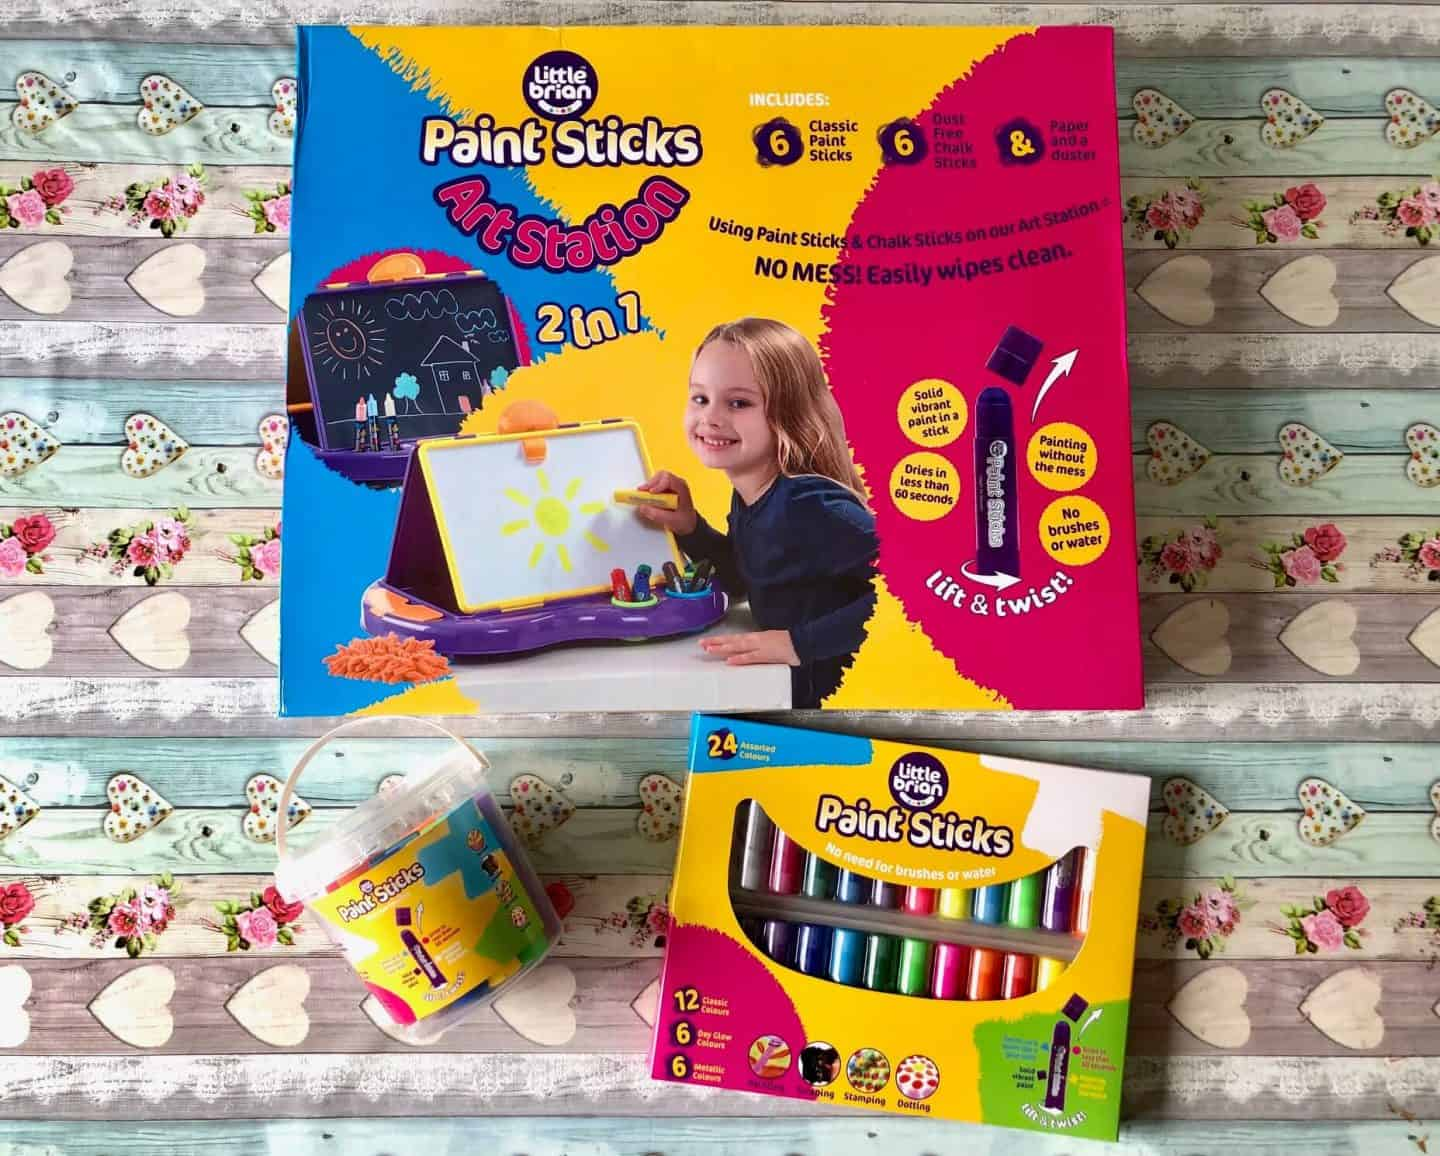 Little Brian Paint Sticks: Mess-Free Painting - Review